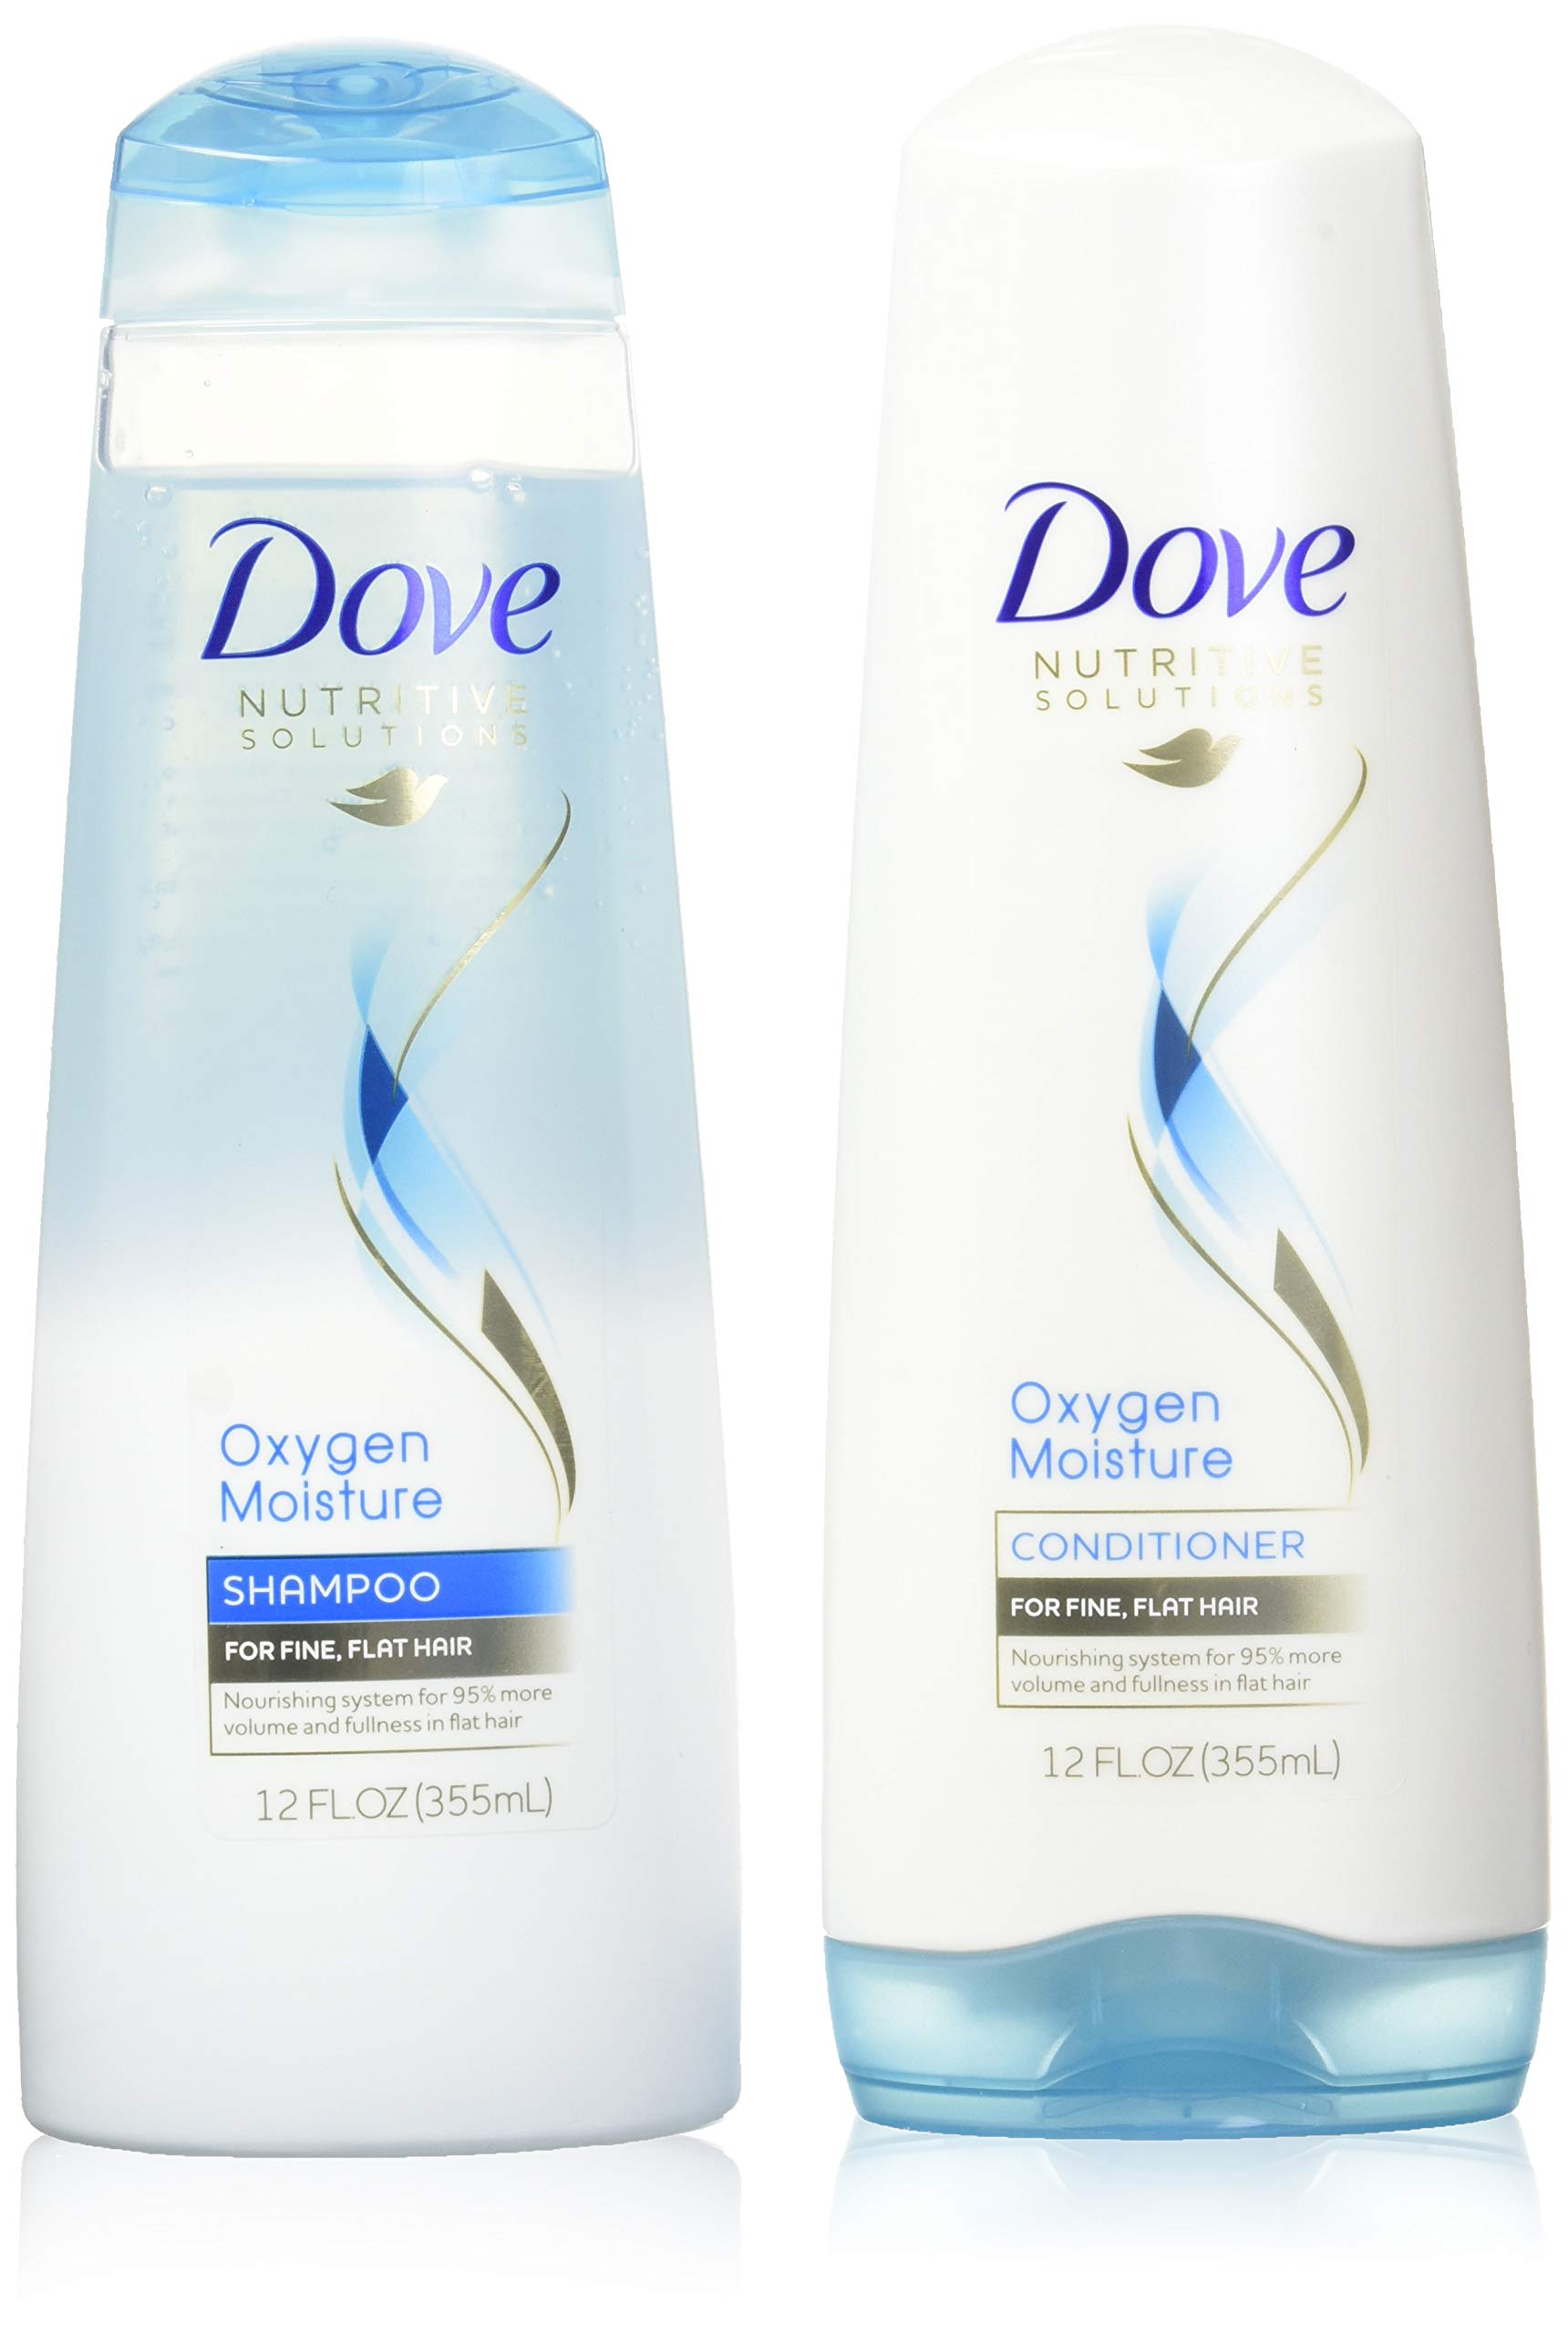 Shampoo Dove - health and beauty of your hair